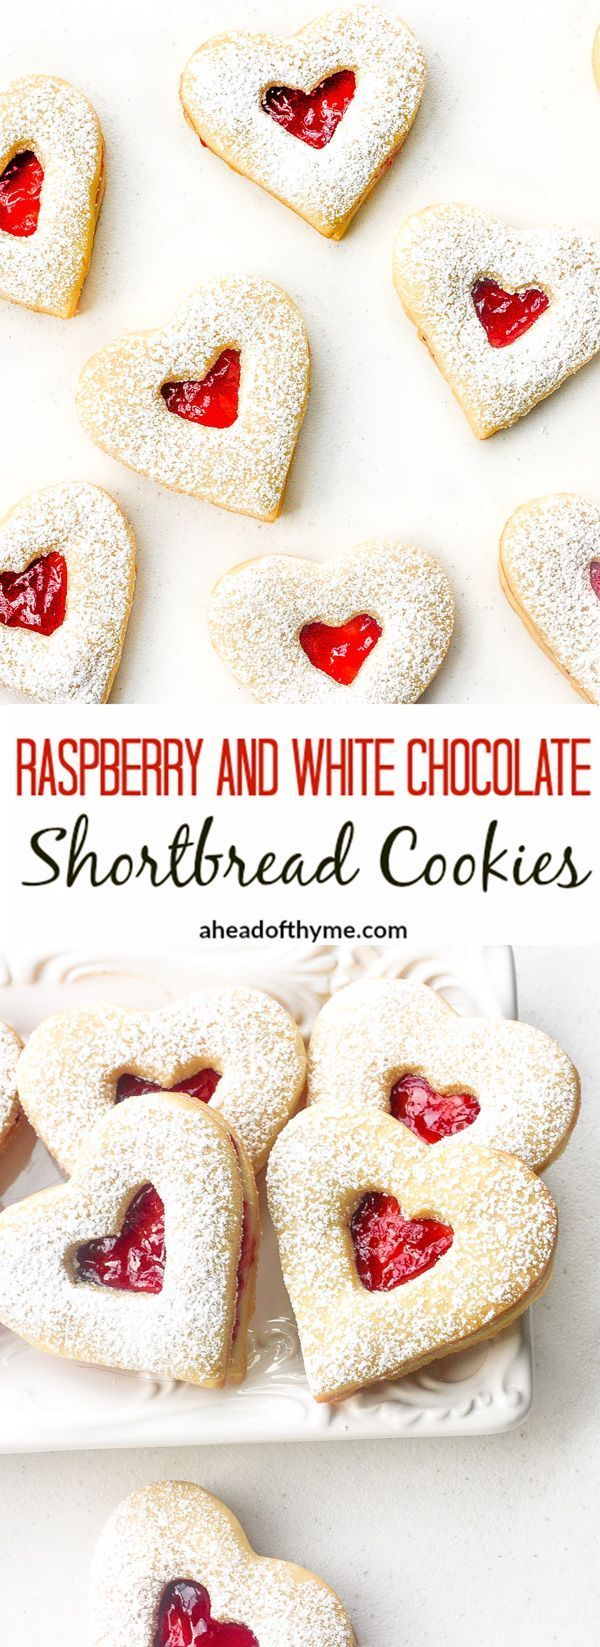 Raspberry and White Chocolate Shortbread Cookies: This Valentine's Day, surprise…